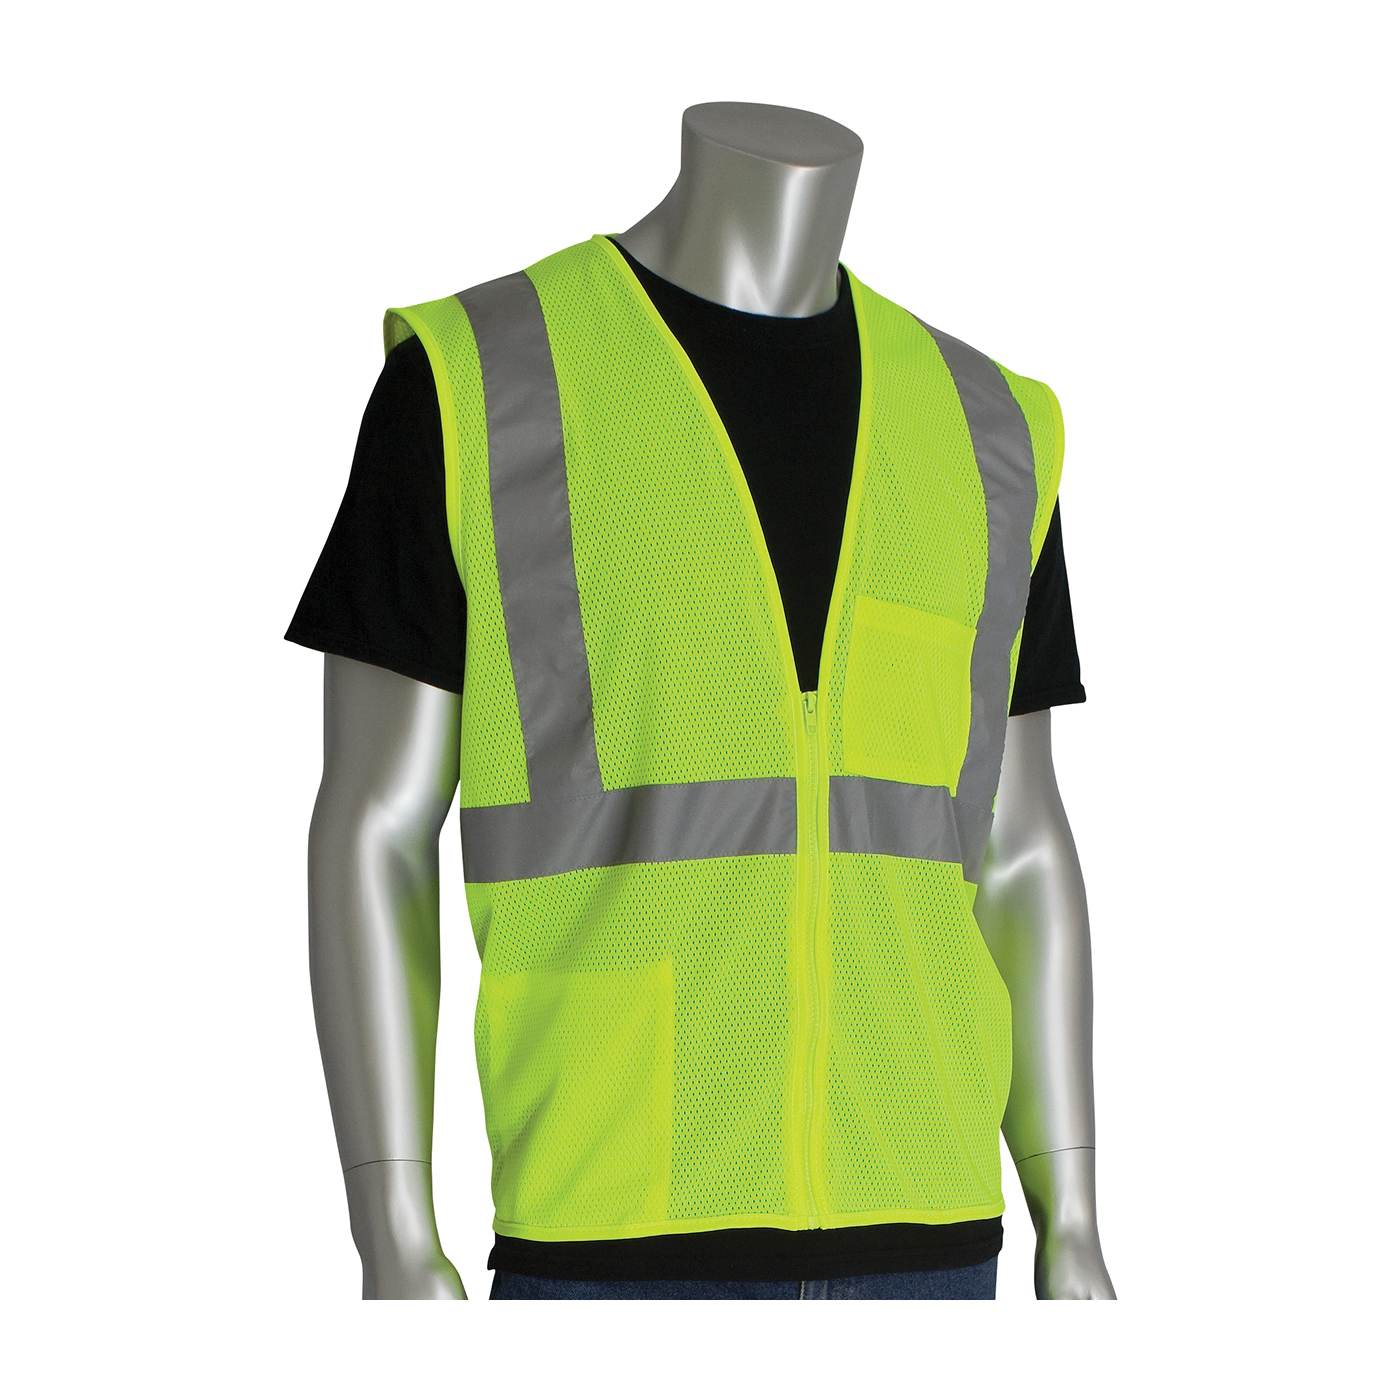 PIP® 302-0702Z Safety Vest, Hi-Viz Lime Yellow, Polyester Mesh, Zipper Closure, 2 Pockets, ANSI Class: Class 2, Specifications Met: ANSI 107 Type R